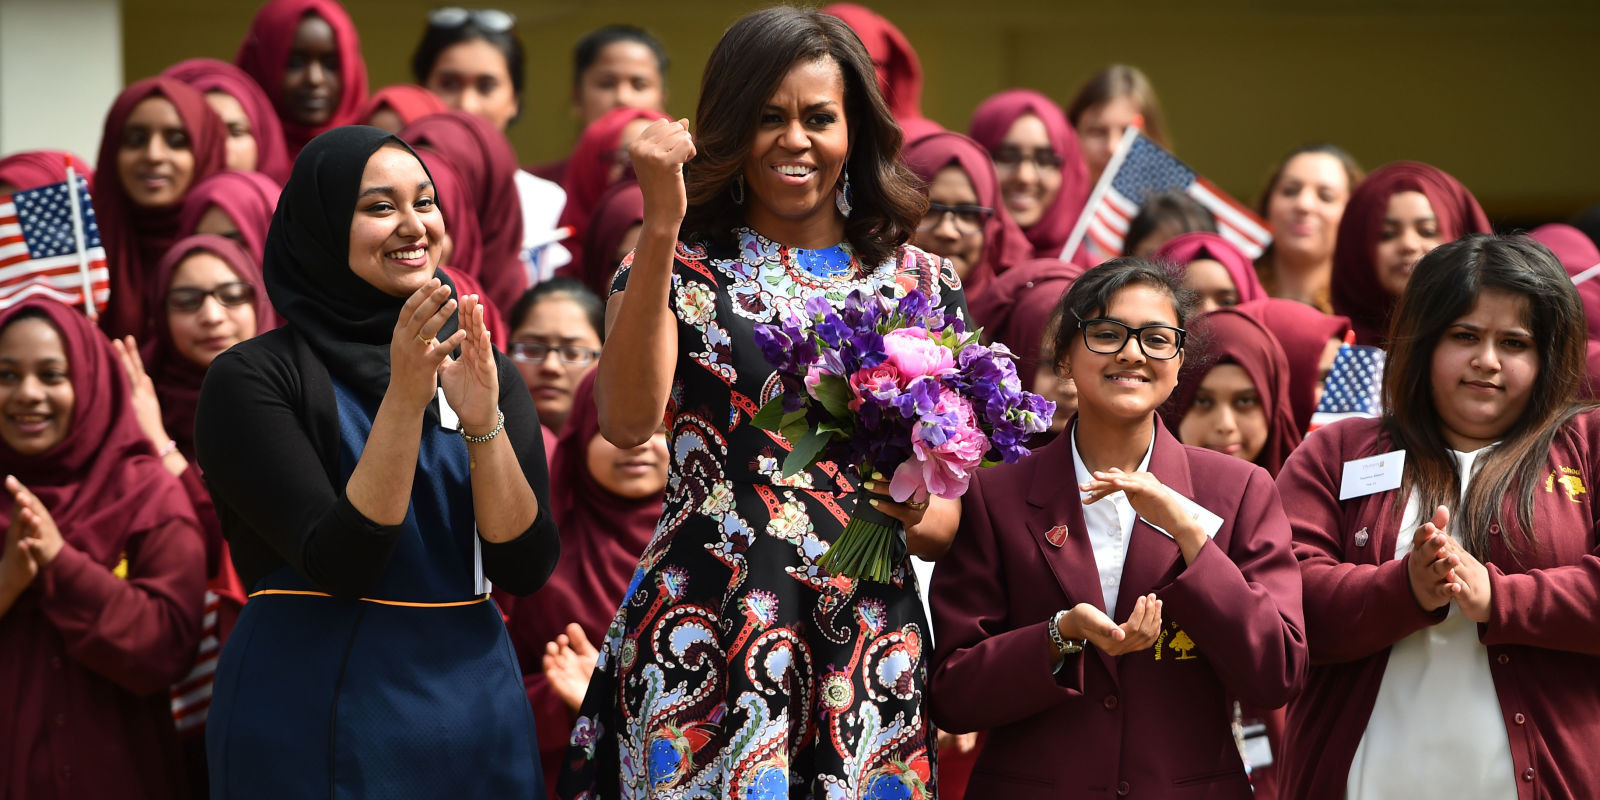 michelle obama on girls education this issue is personal for me